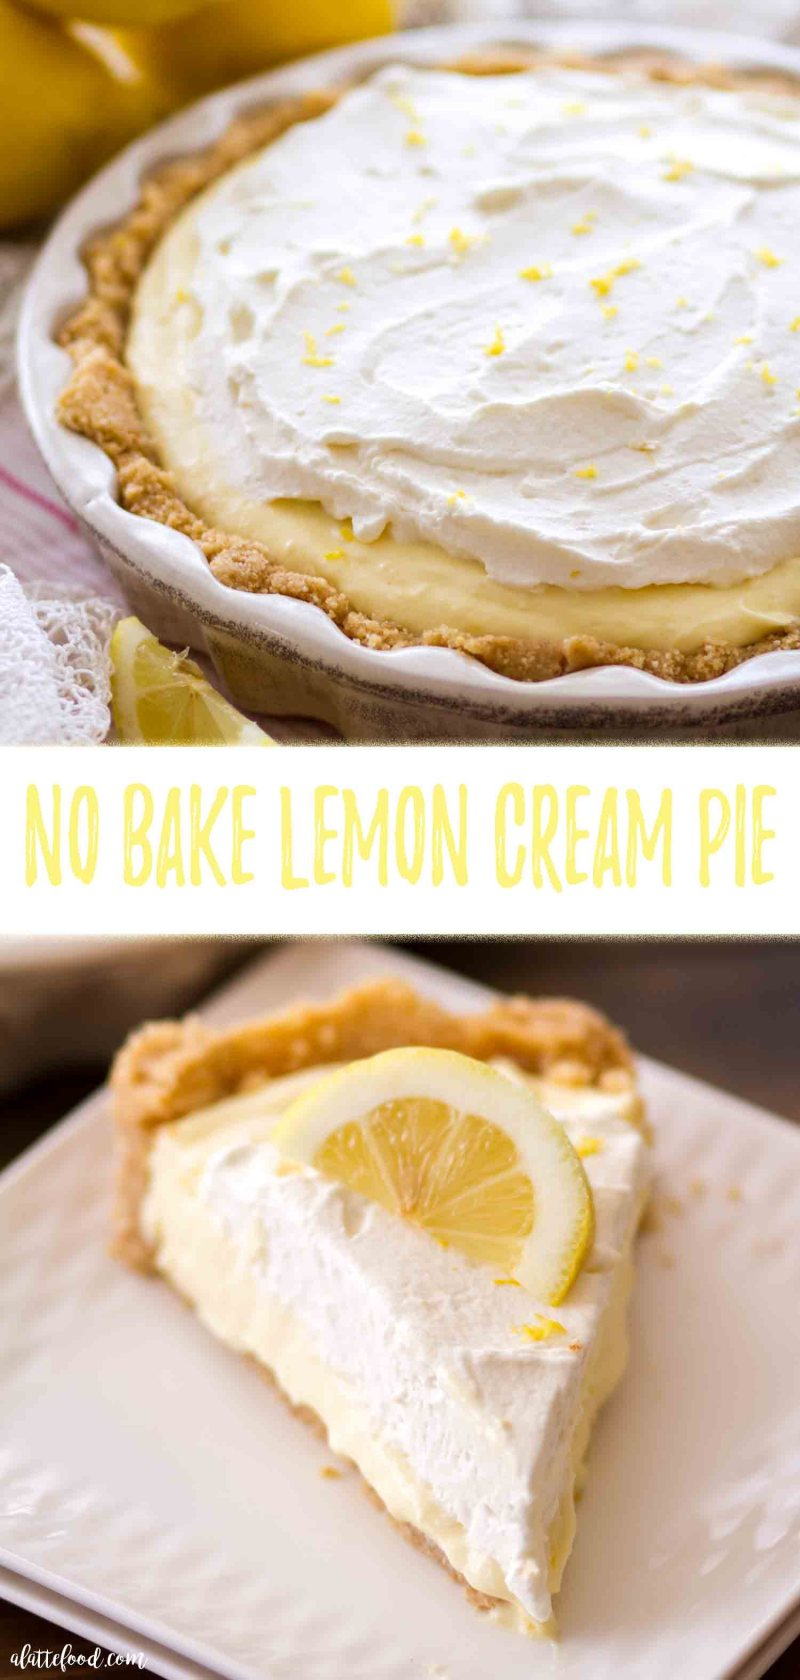 No Bake Lemon Cream Pie with a nilla wafer crust (vanilla wafer crust) and homemade lemon whipped cream.